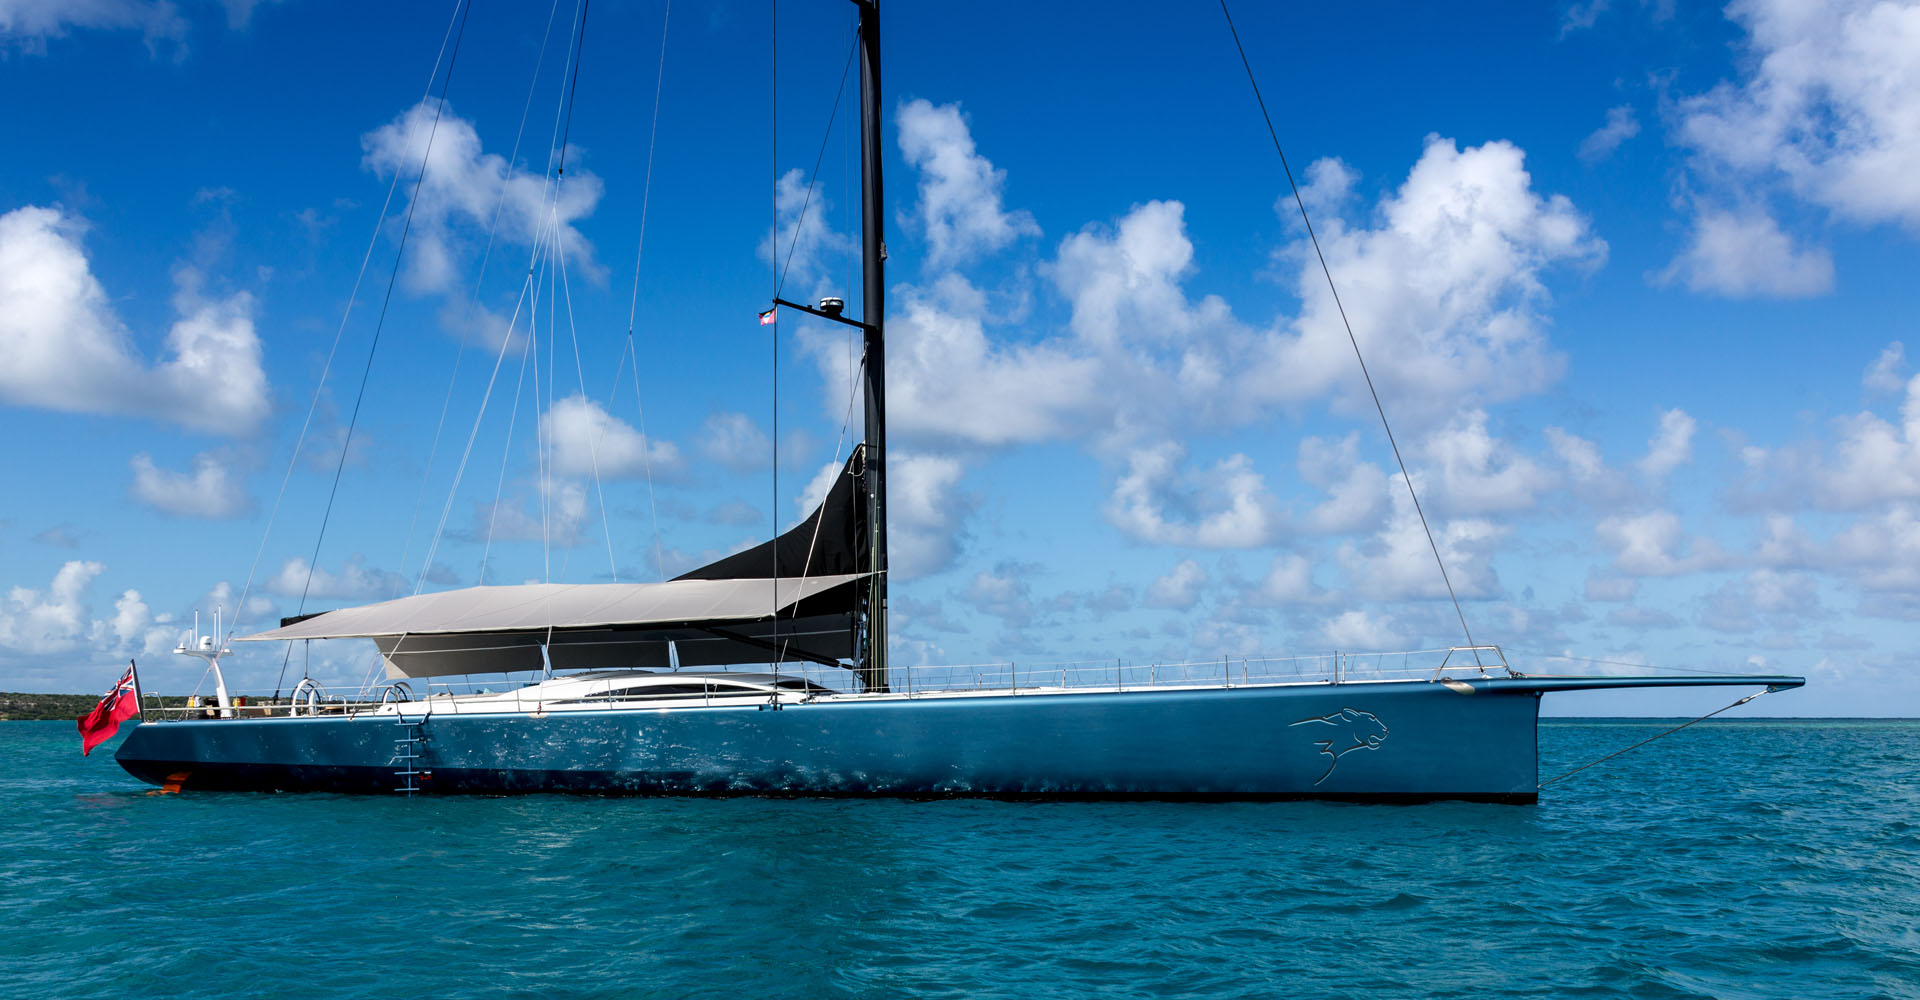 Sailing yacht Leopard3 with bowsprit